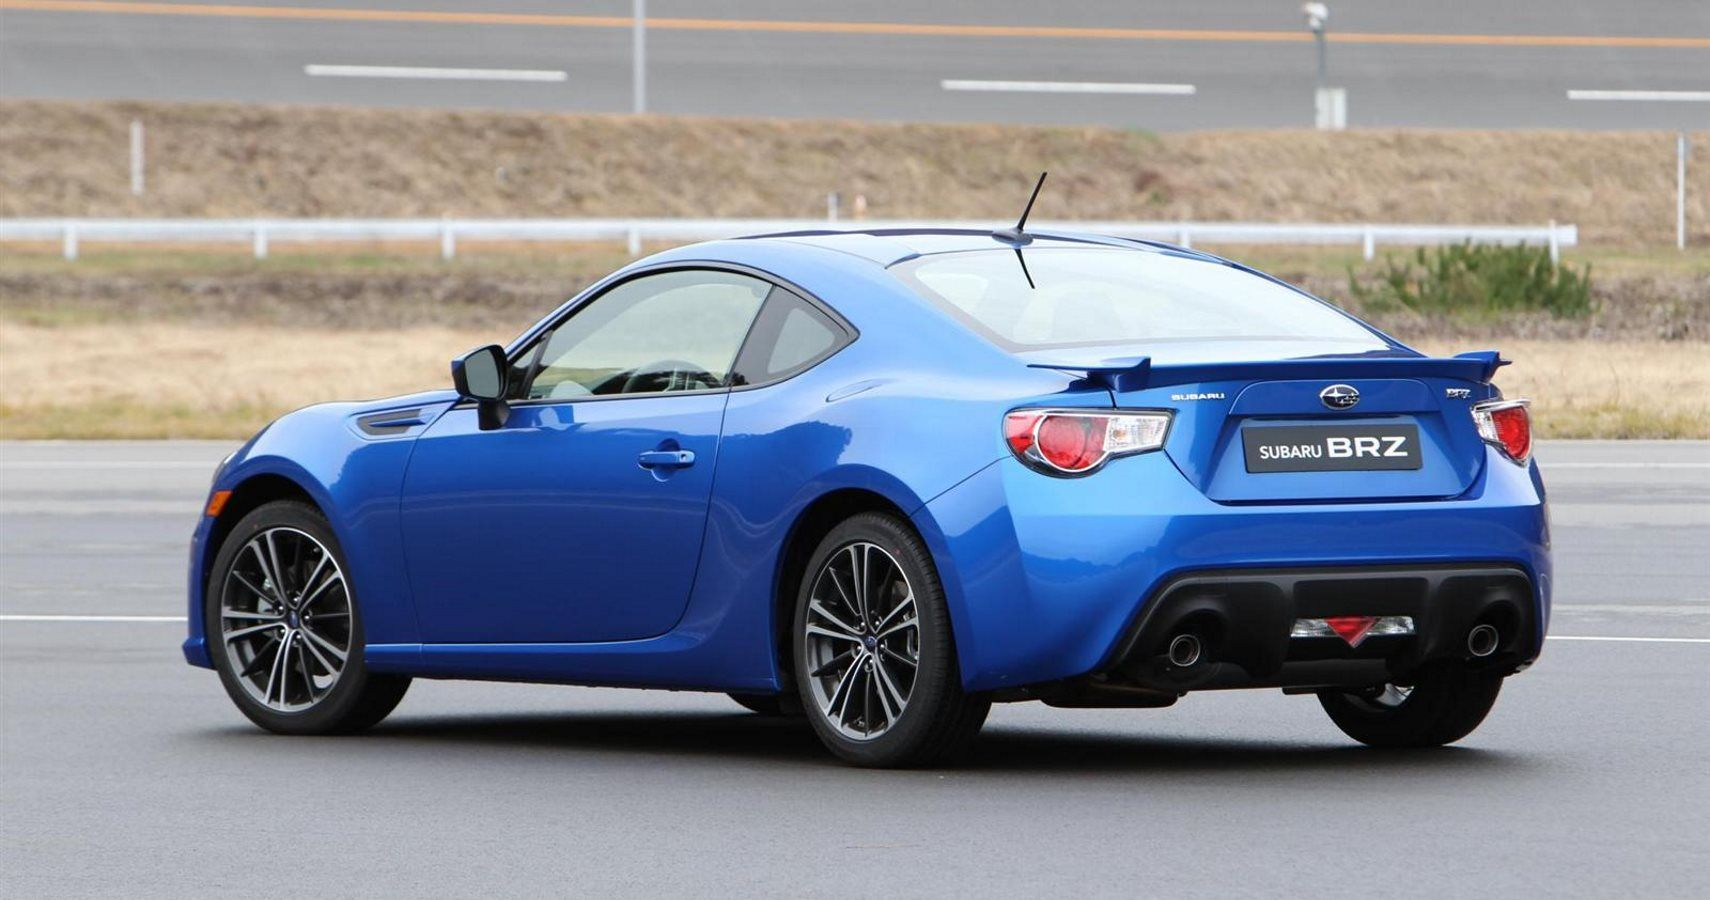 Subaru Toyota Gear Up To Recall 400 000 Sports Cars For Engine Defect